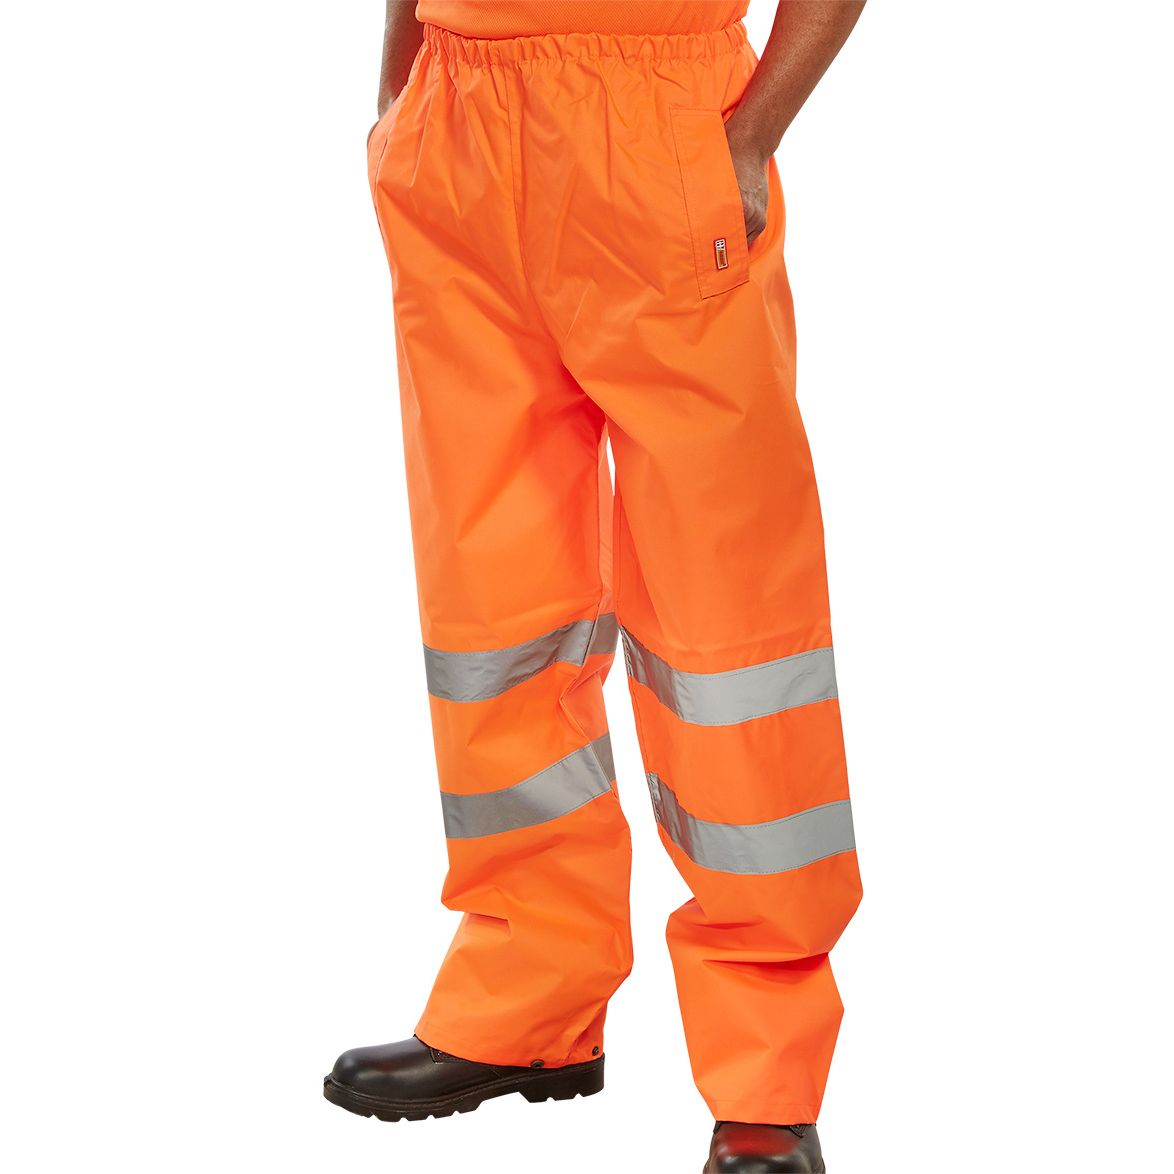 BSeen Traffic Trousers Hi-Vis Reflective Tape Medium Orange Ref TENORM *Up to 3 Day Leadtime*